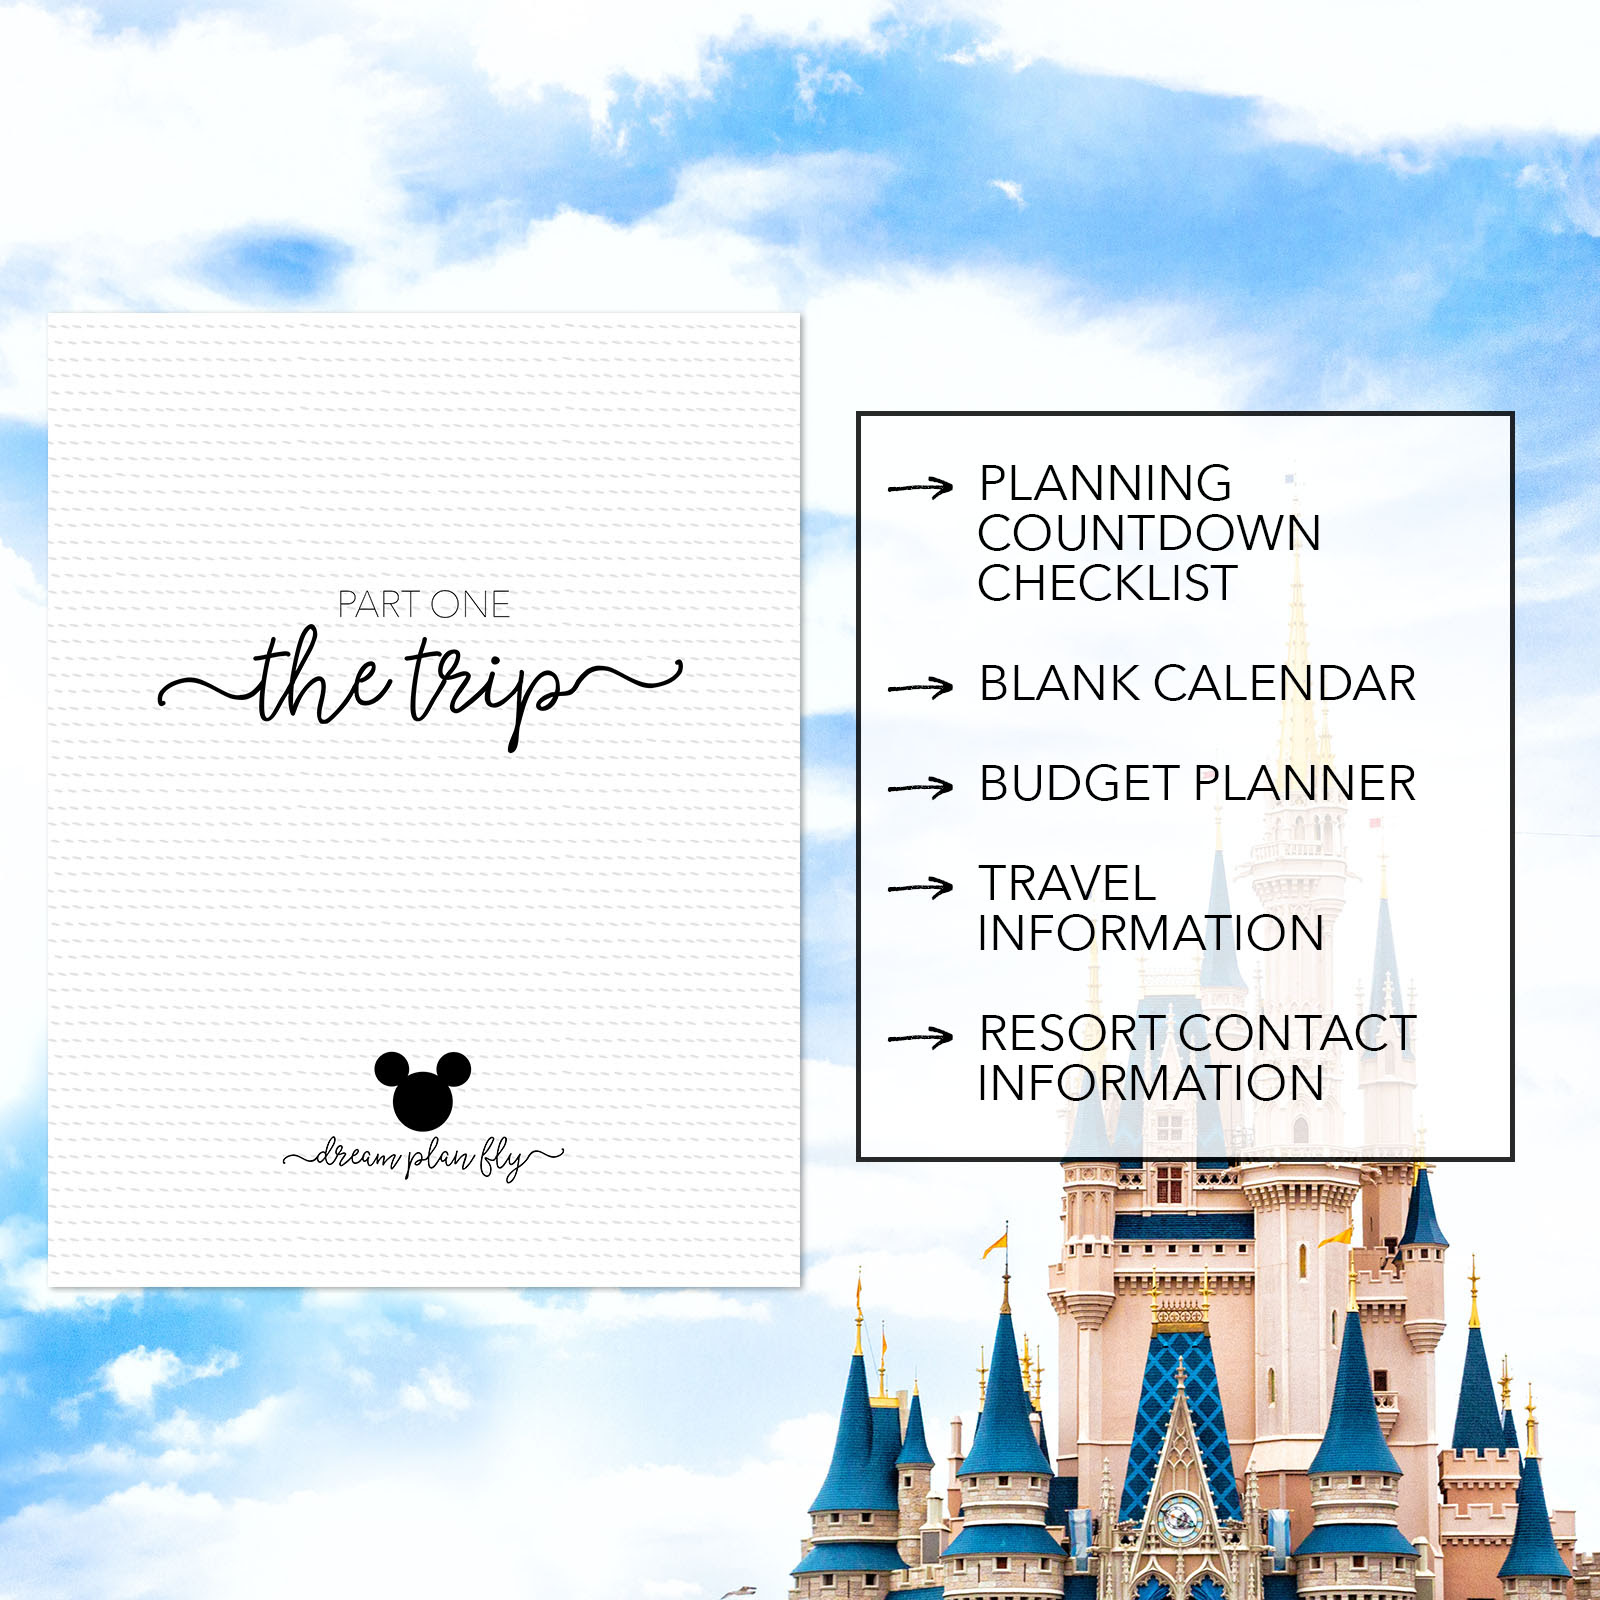 Ultimate Walt Disney World Vacation Planner - Dream Plan Fly